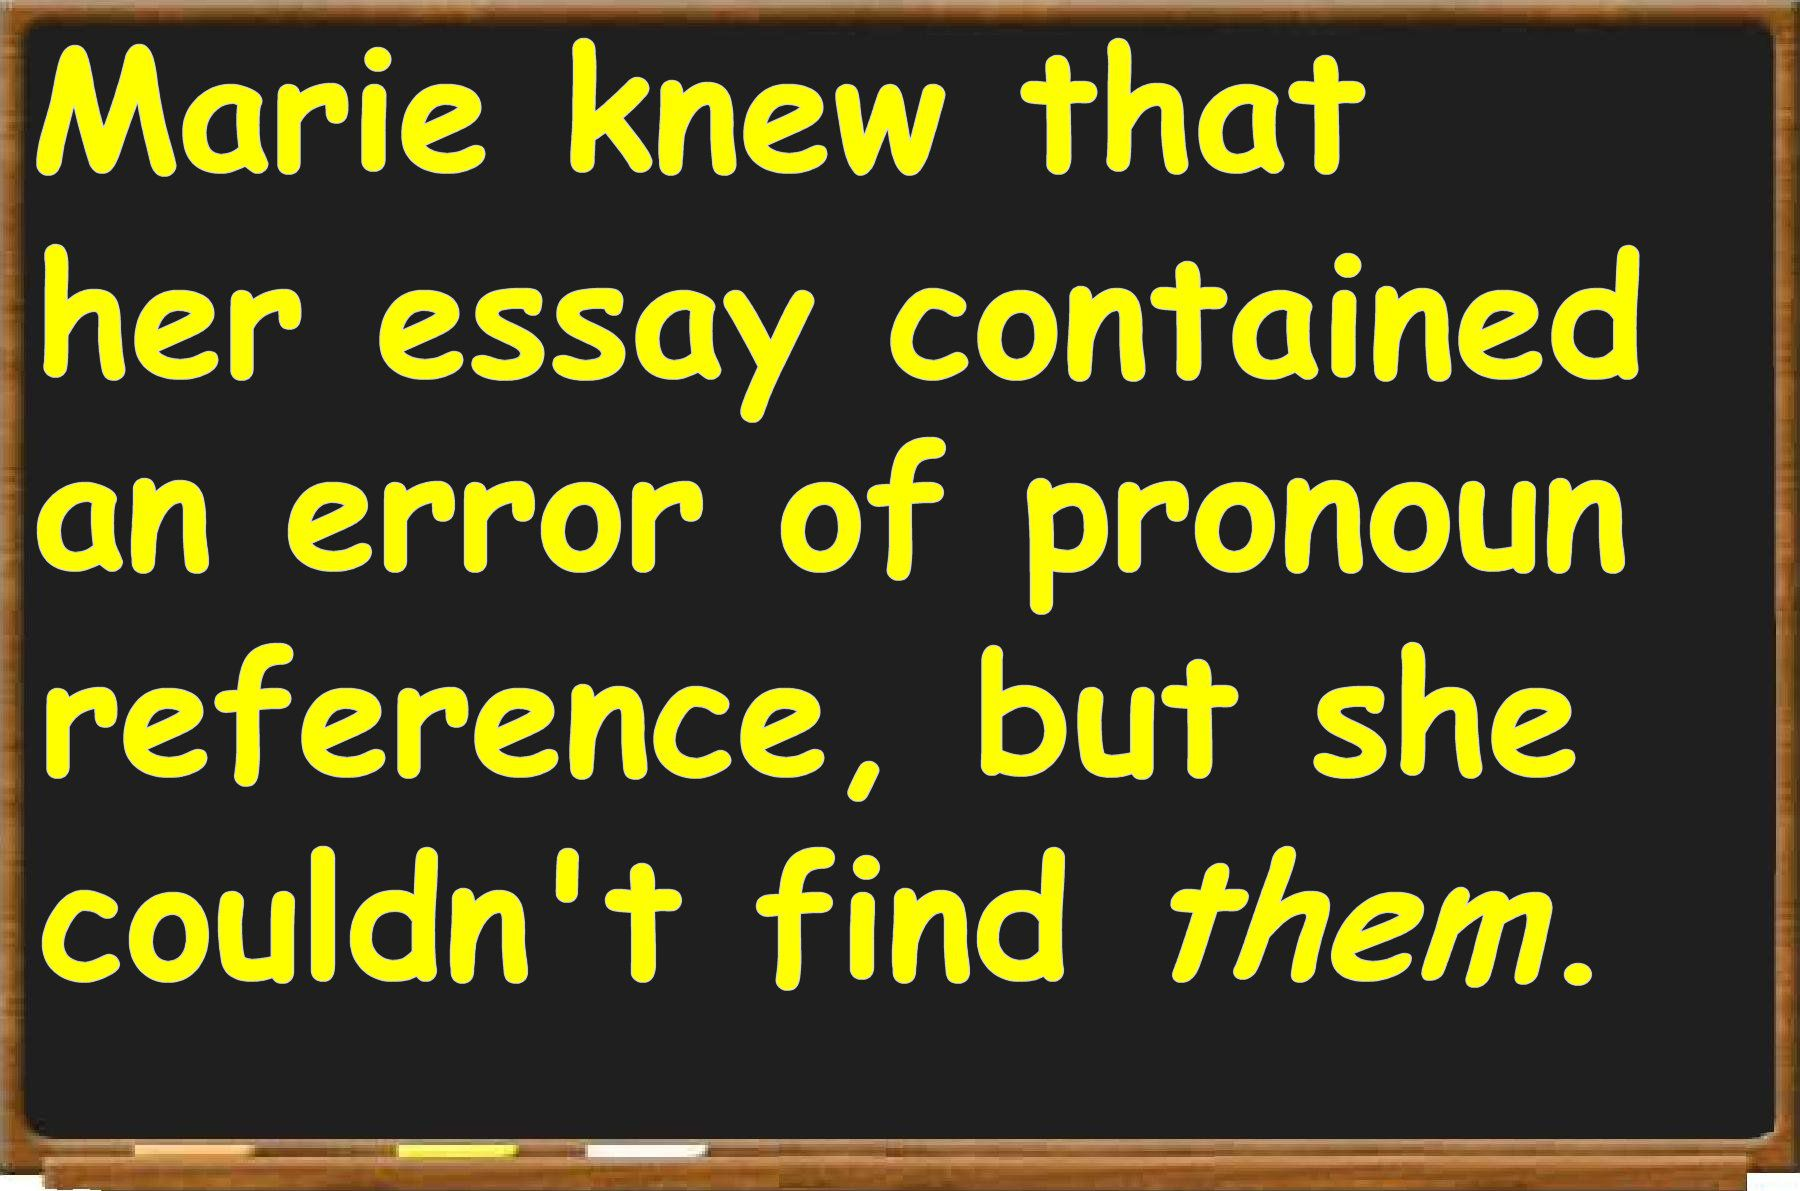 an introduction to vague pronoun references Faulty pronoun references can happen when the pronoun's antecedent functions as an adjective rather than a noun in such cases, the true antecedent is hidden or obscured because it has been subordinated to another noun.